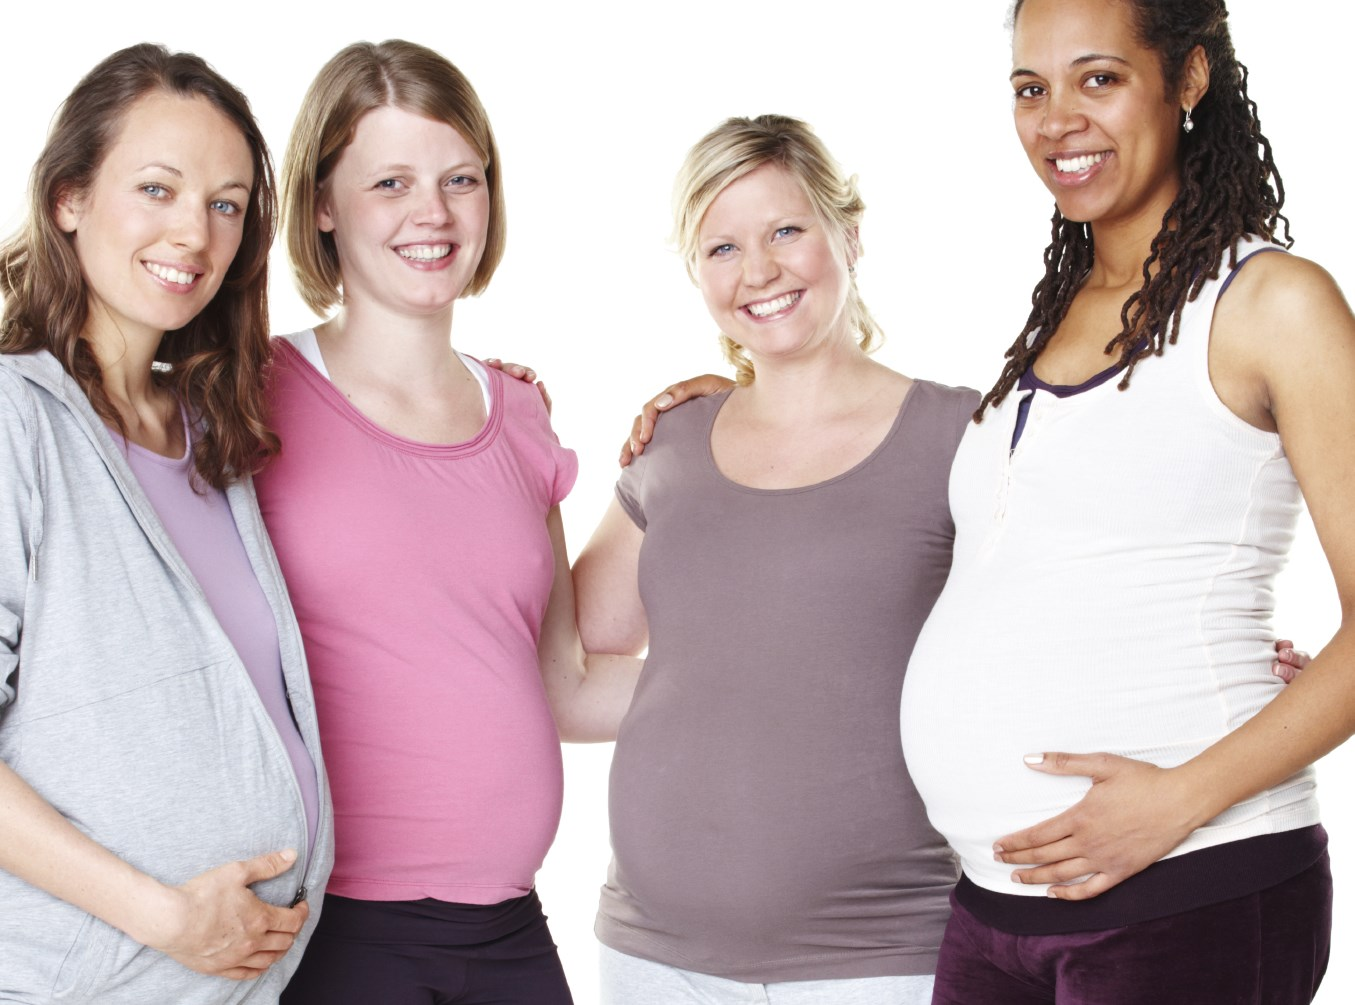 TOP TIPS TO ENSURE PREGNANCY HEALTH BOTH FOR THE MOM AND THE BABY